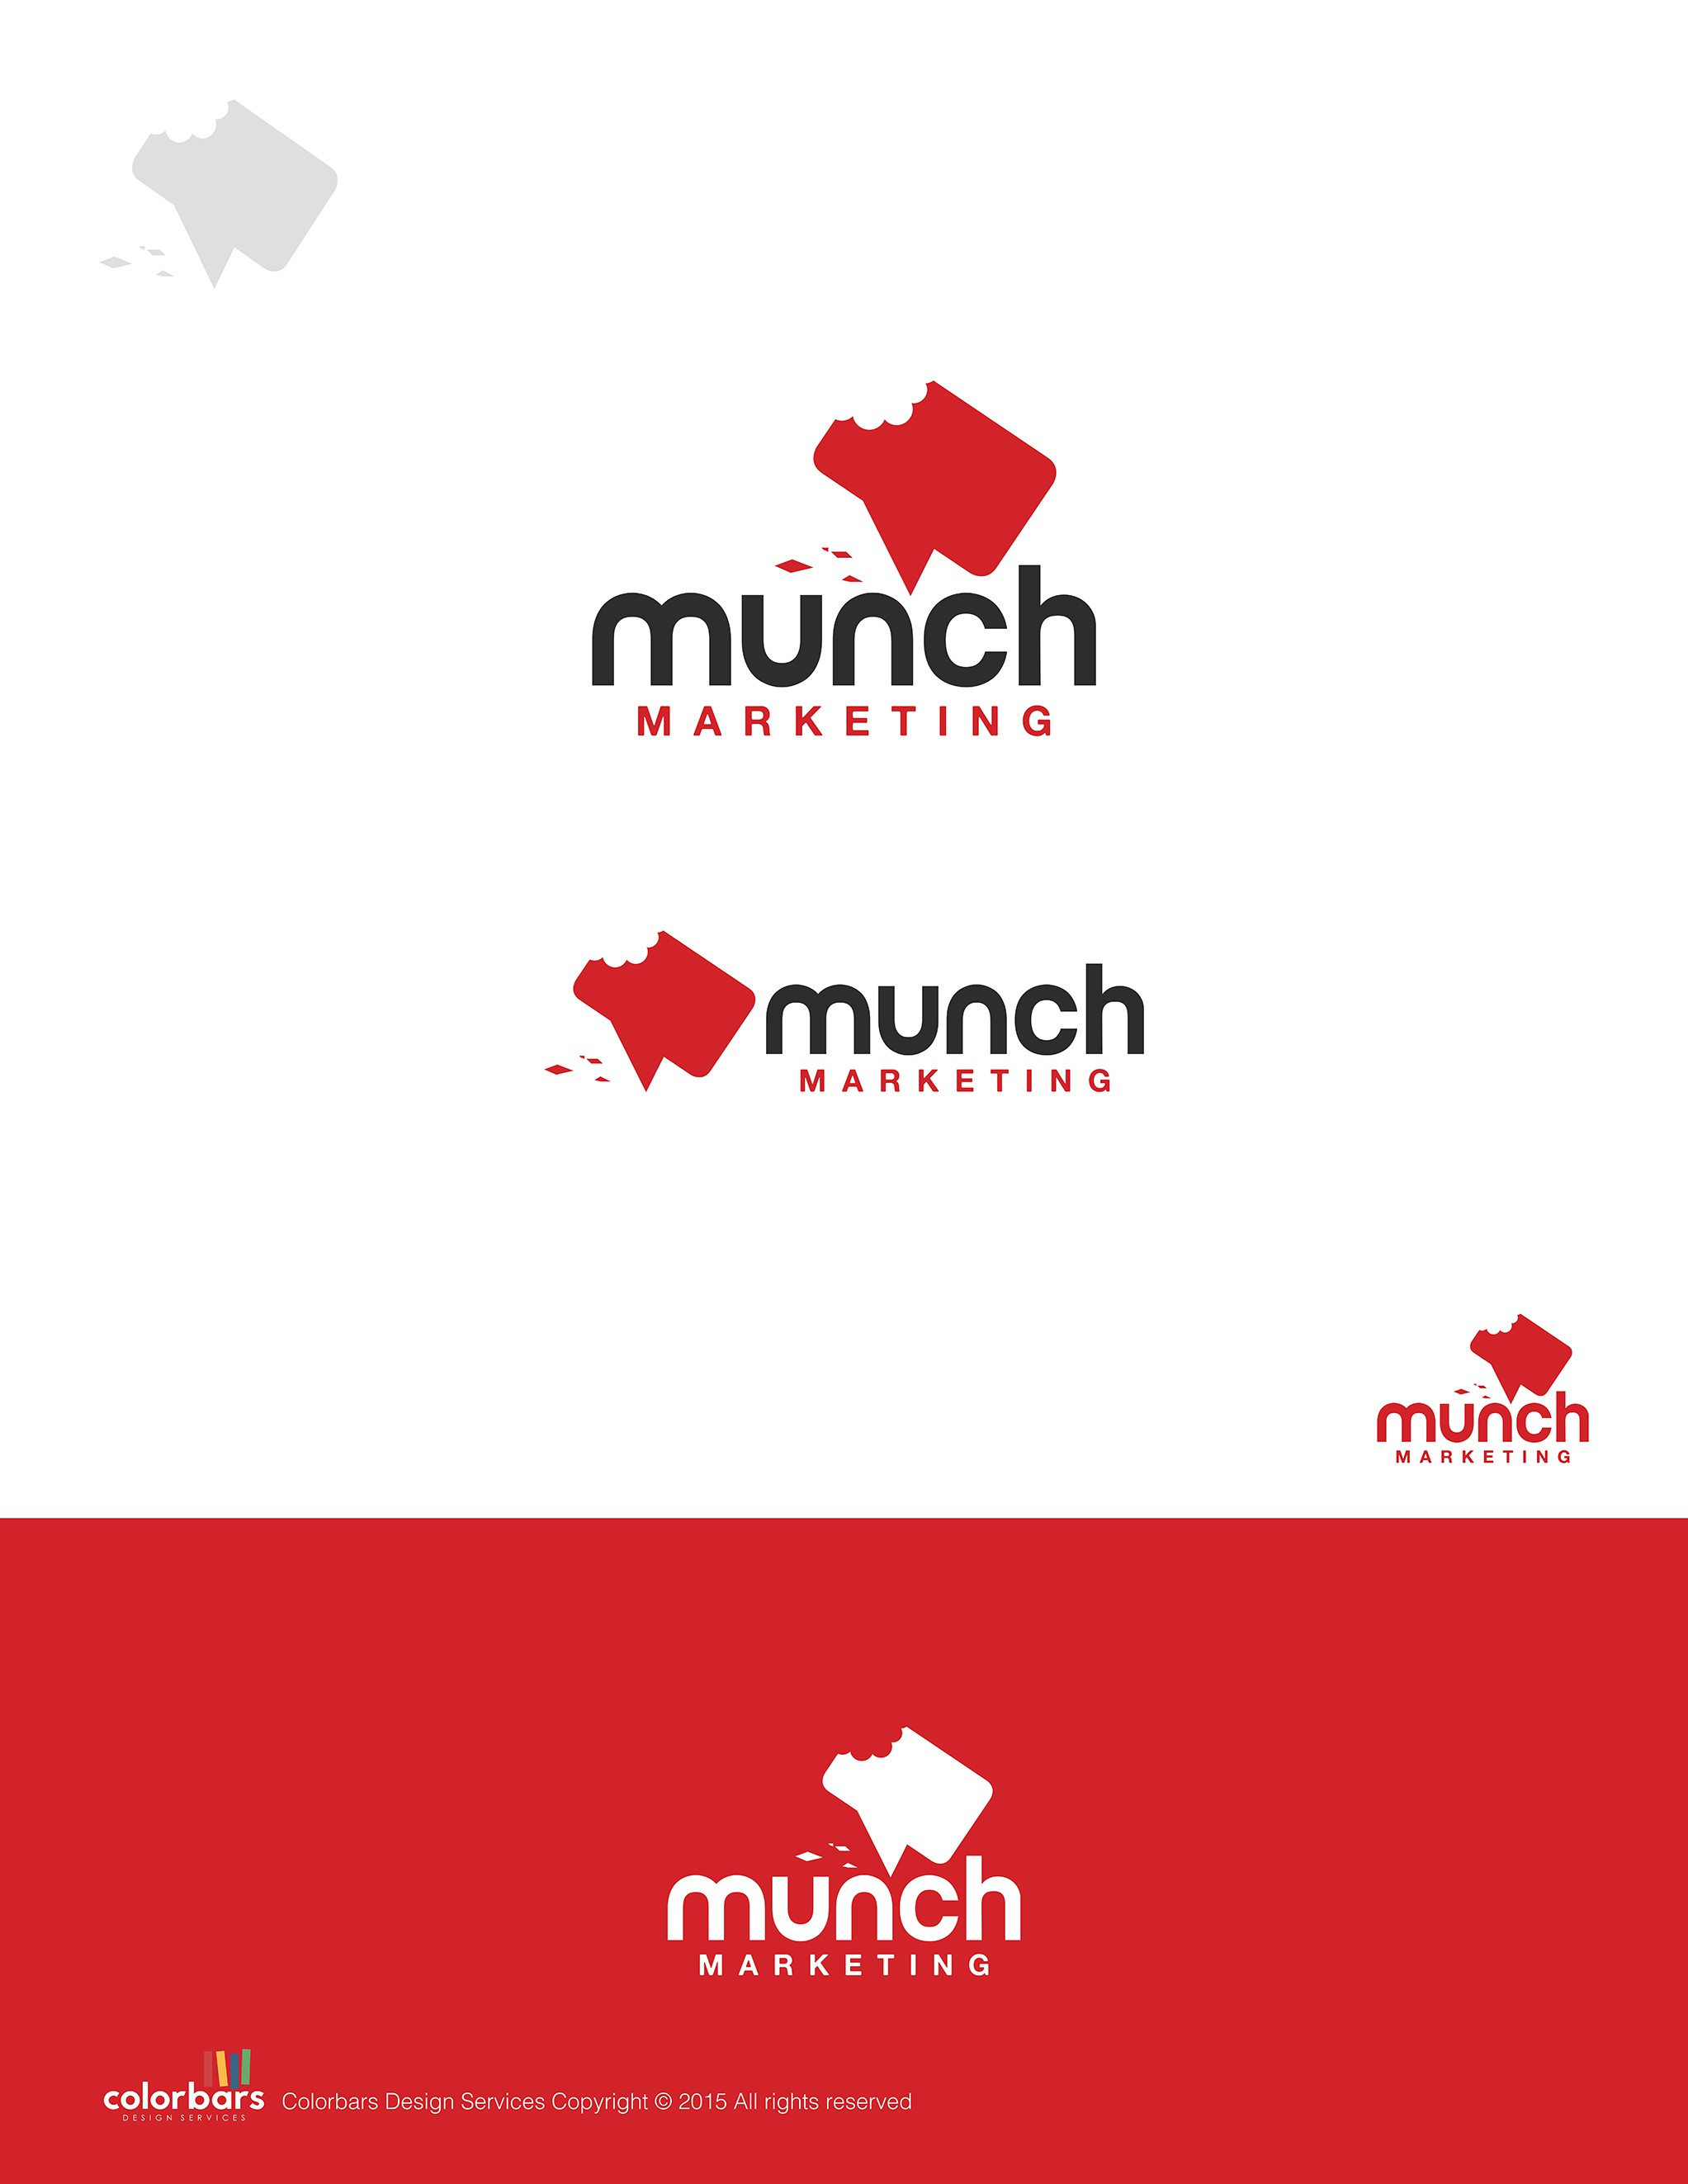 Design a snappy logo for marketing consultancy which targets cafes and restaurants